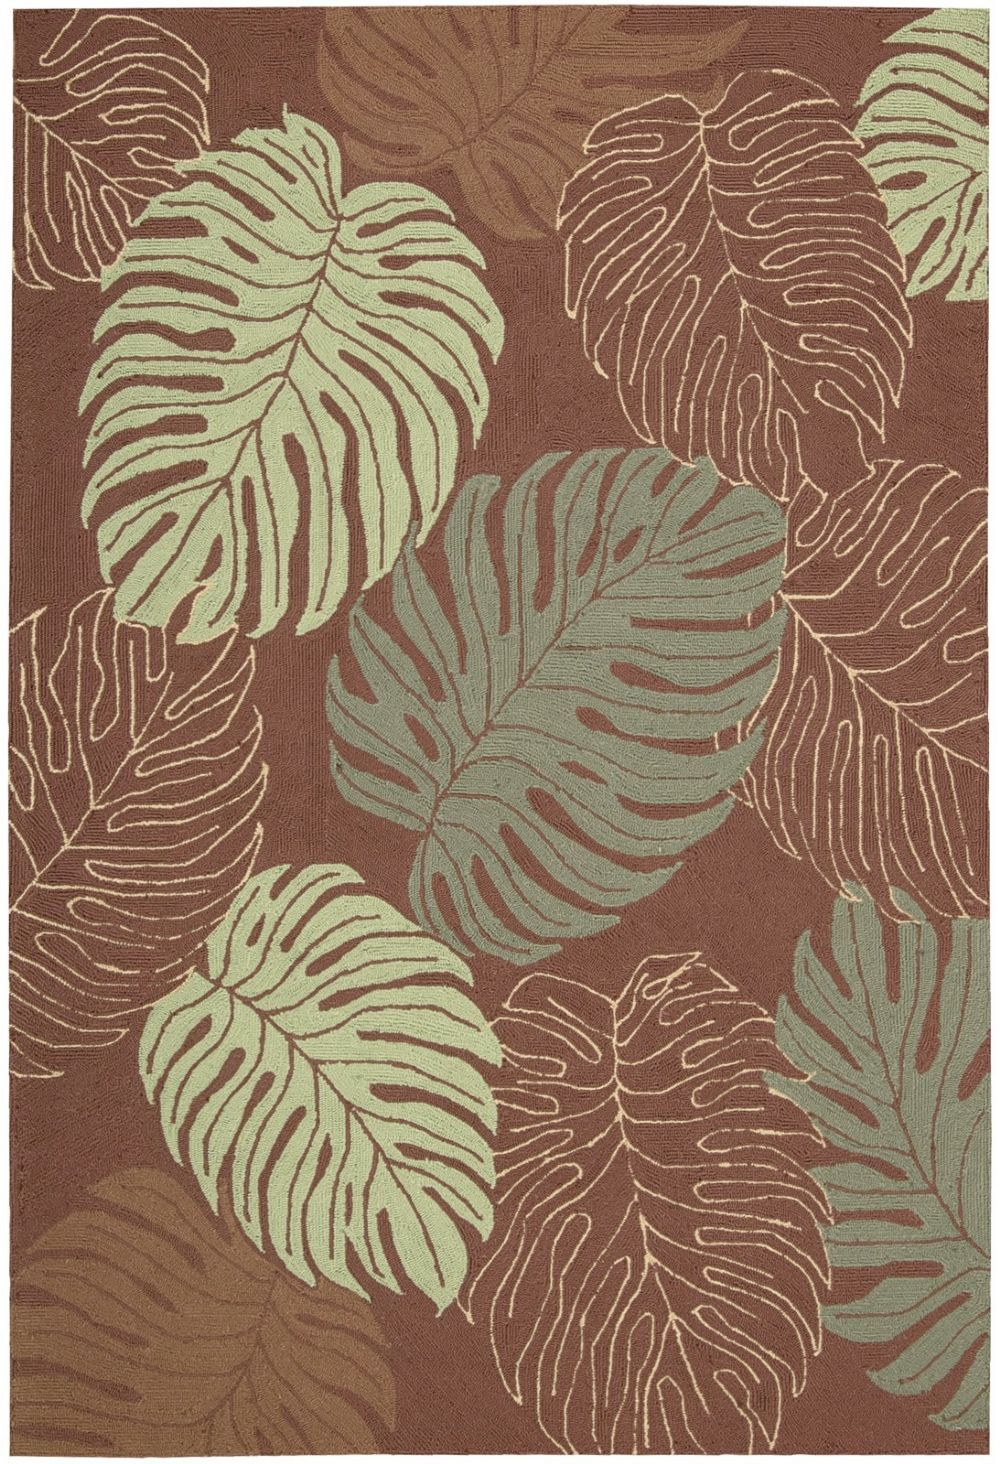 nourison rainforest country & floral area rug collection